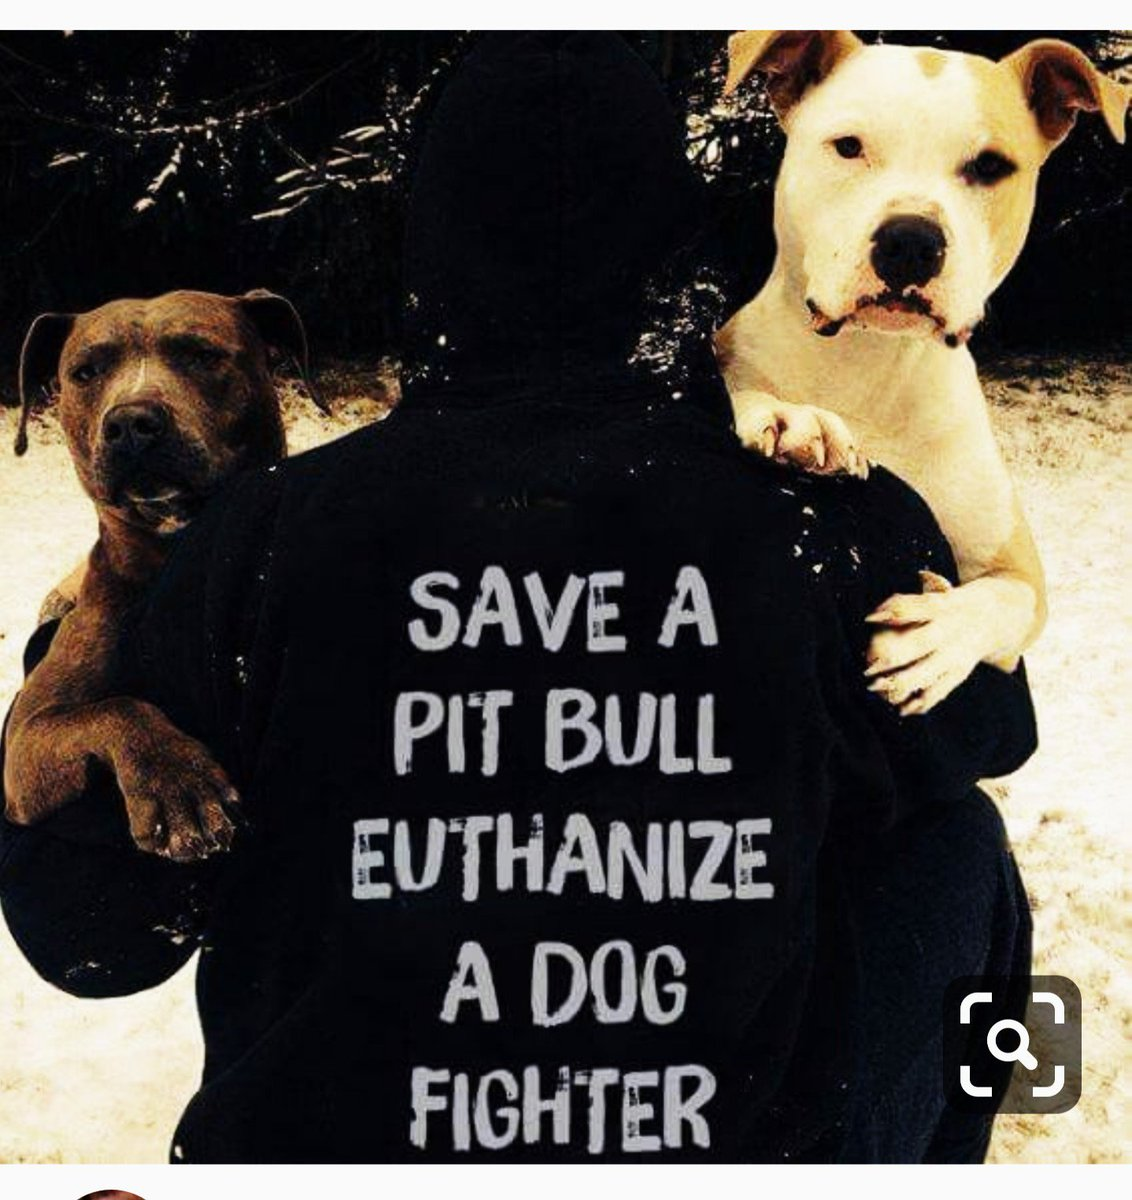 HARSH PUNISHMENT FOR DOG FIGHTERS, BACKYARD BREEDERS, ABUSE CRUELTY TORTURING RAPE ZOOPHILIA, HOMELESS OF PETS.*ALL SOCIAL MEDIA IS FULL OF THISBAN ALL PROMOTION ON SOCIAL MEDIAS  <br>http://pic.twitter.com/sj25GFZHe9